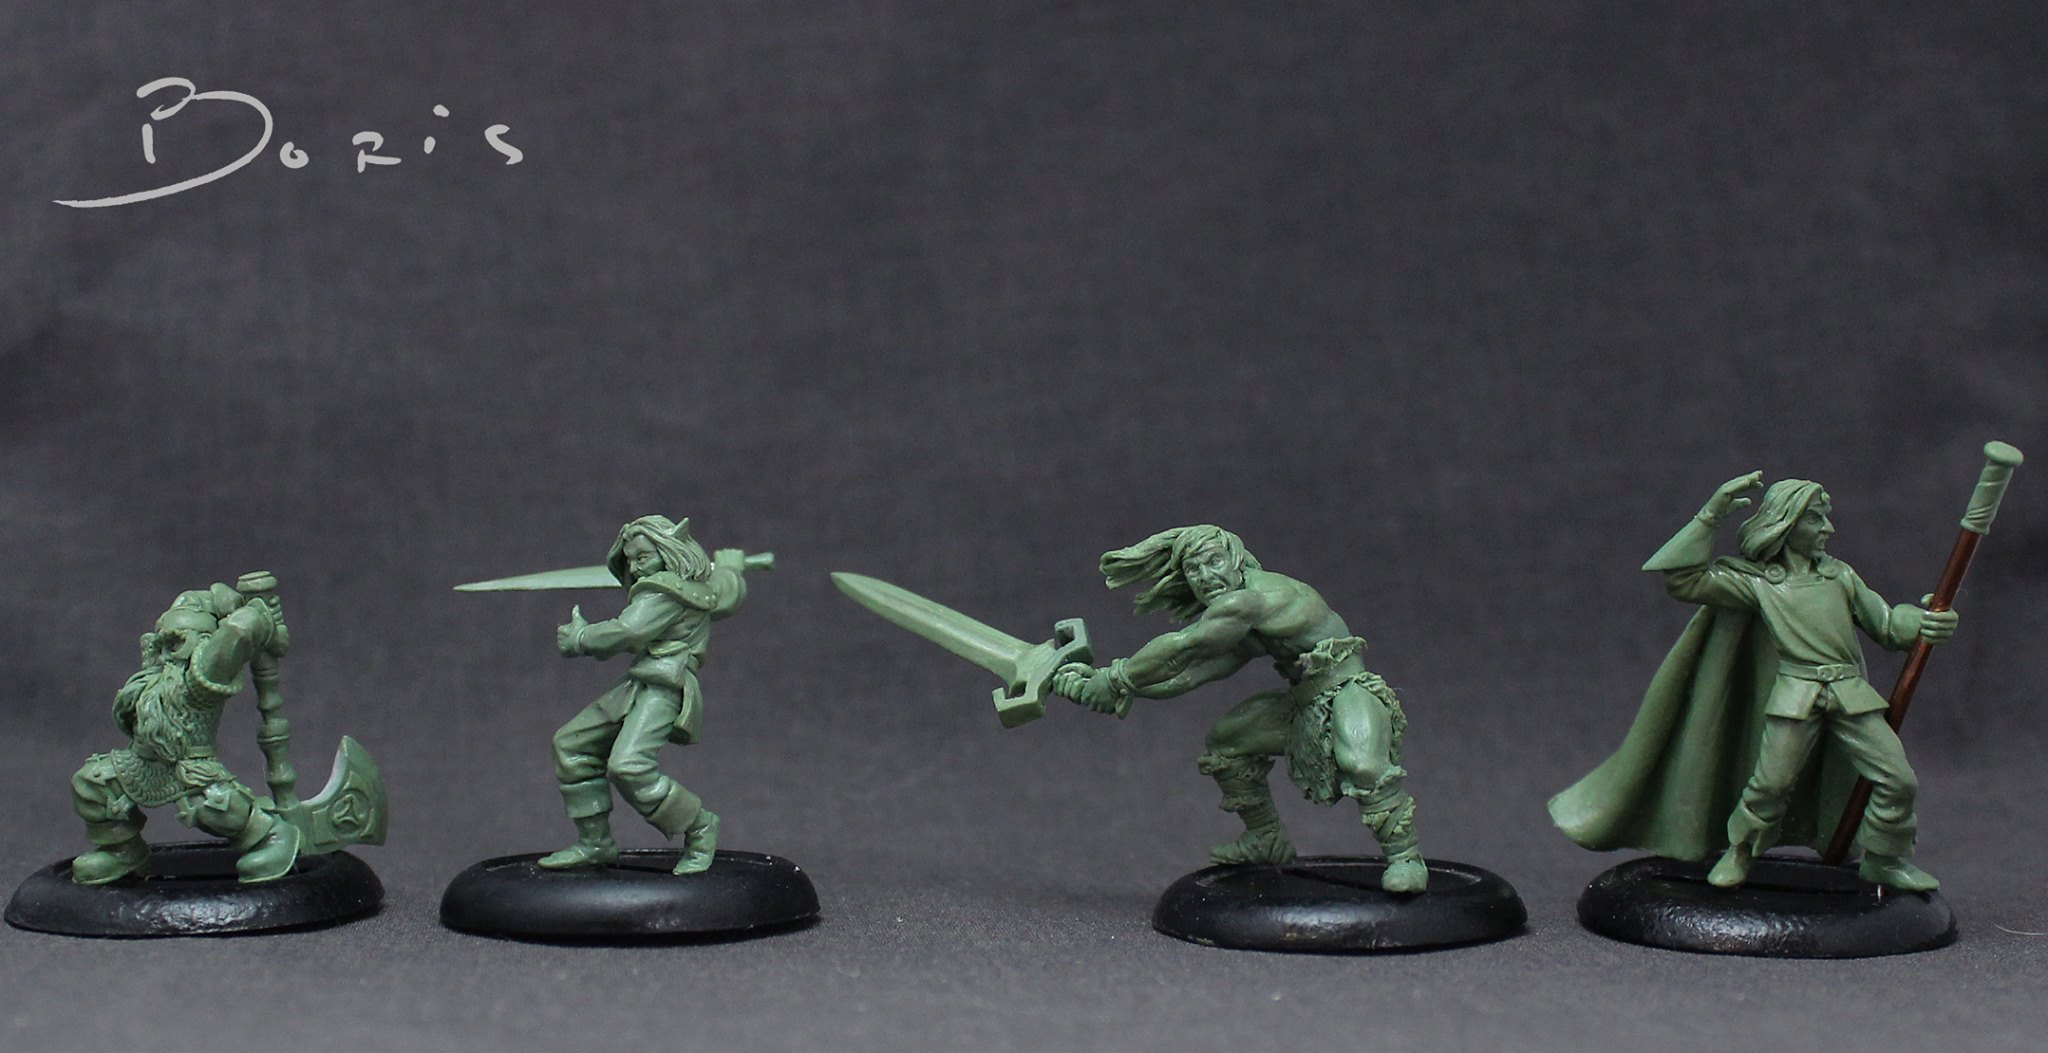 Boris Simiano Miniatures